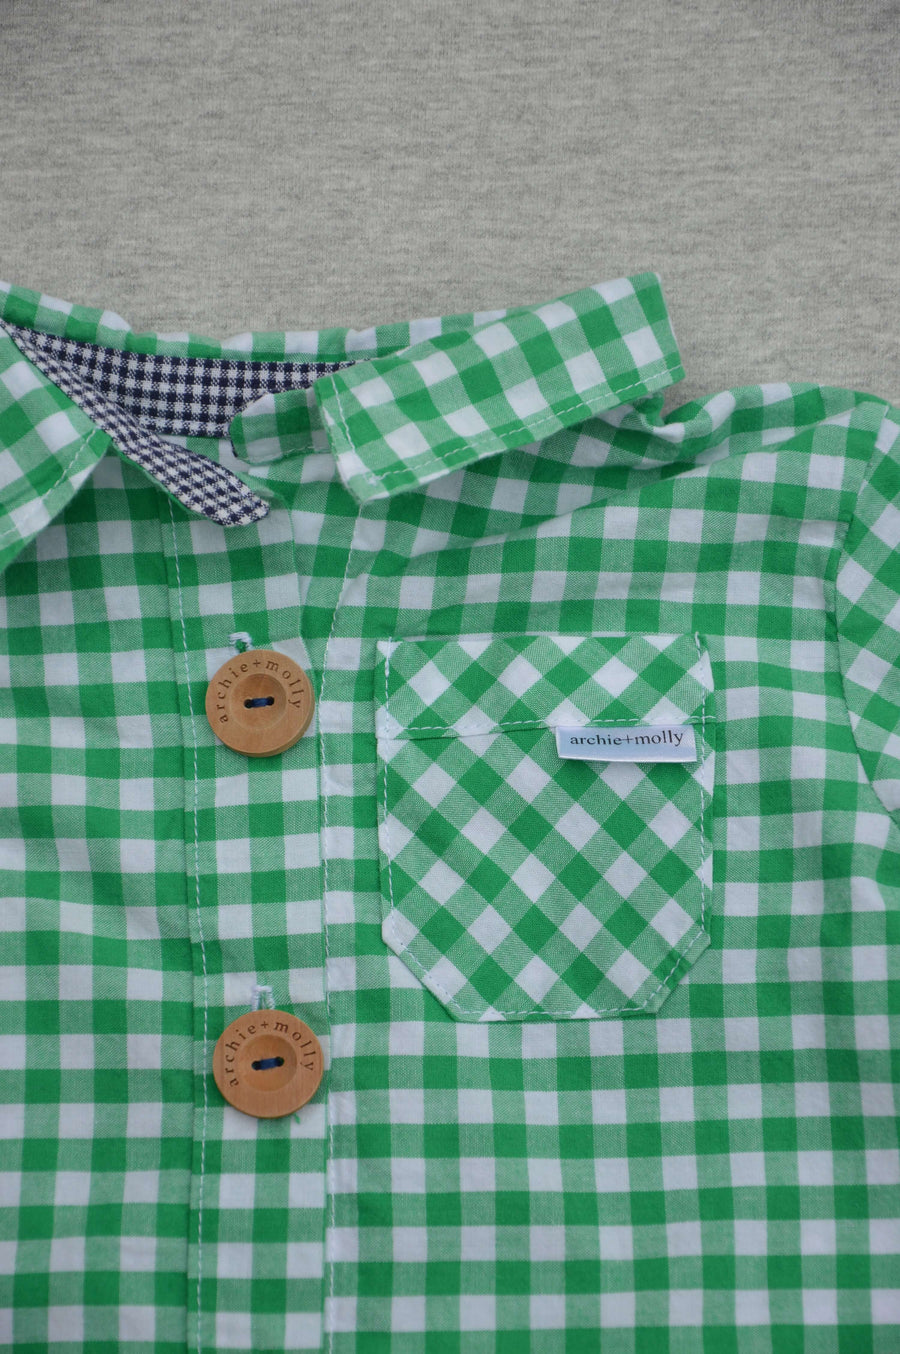 Archie & Molly - nearly new - green & white checked shirt, size 6-12m